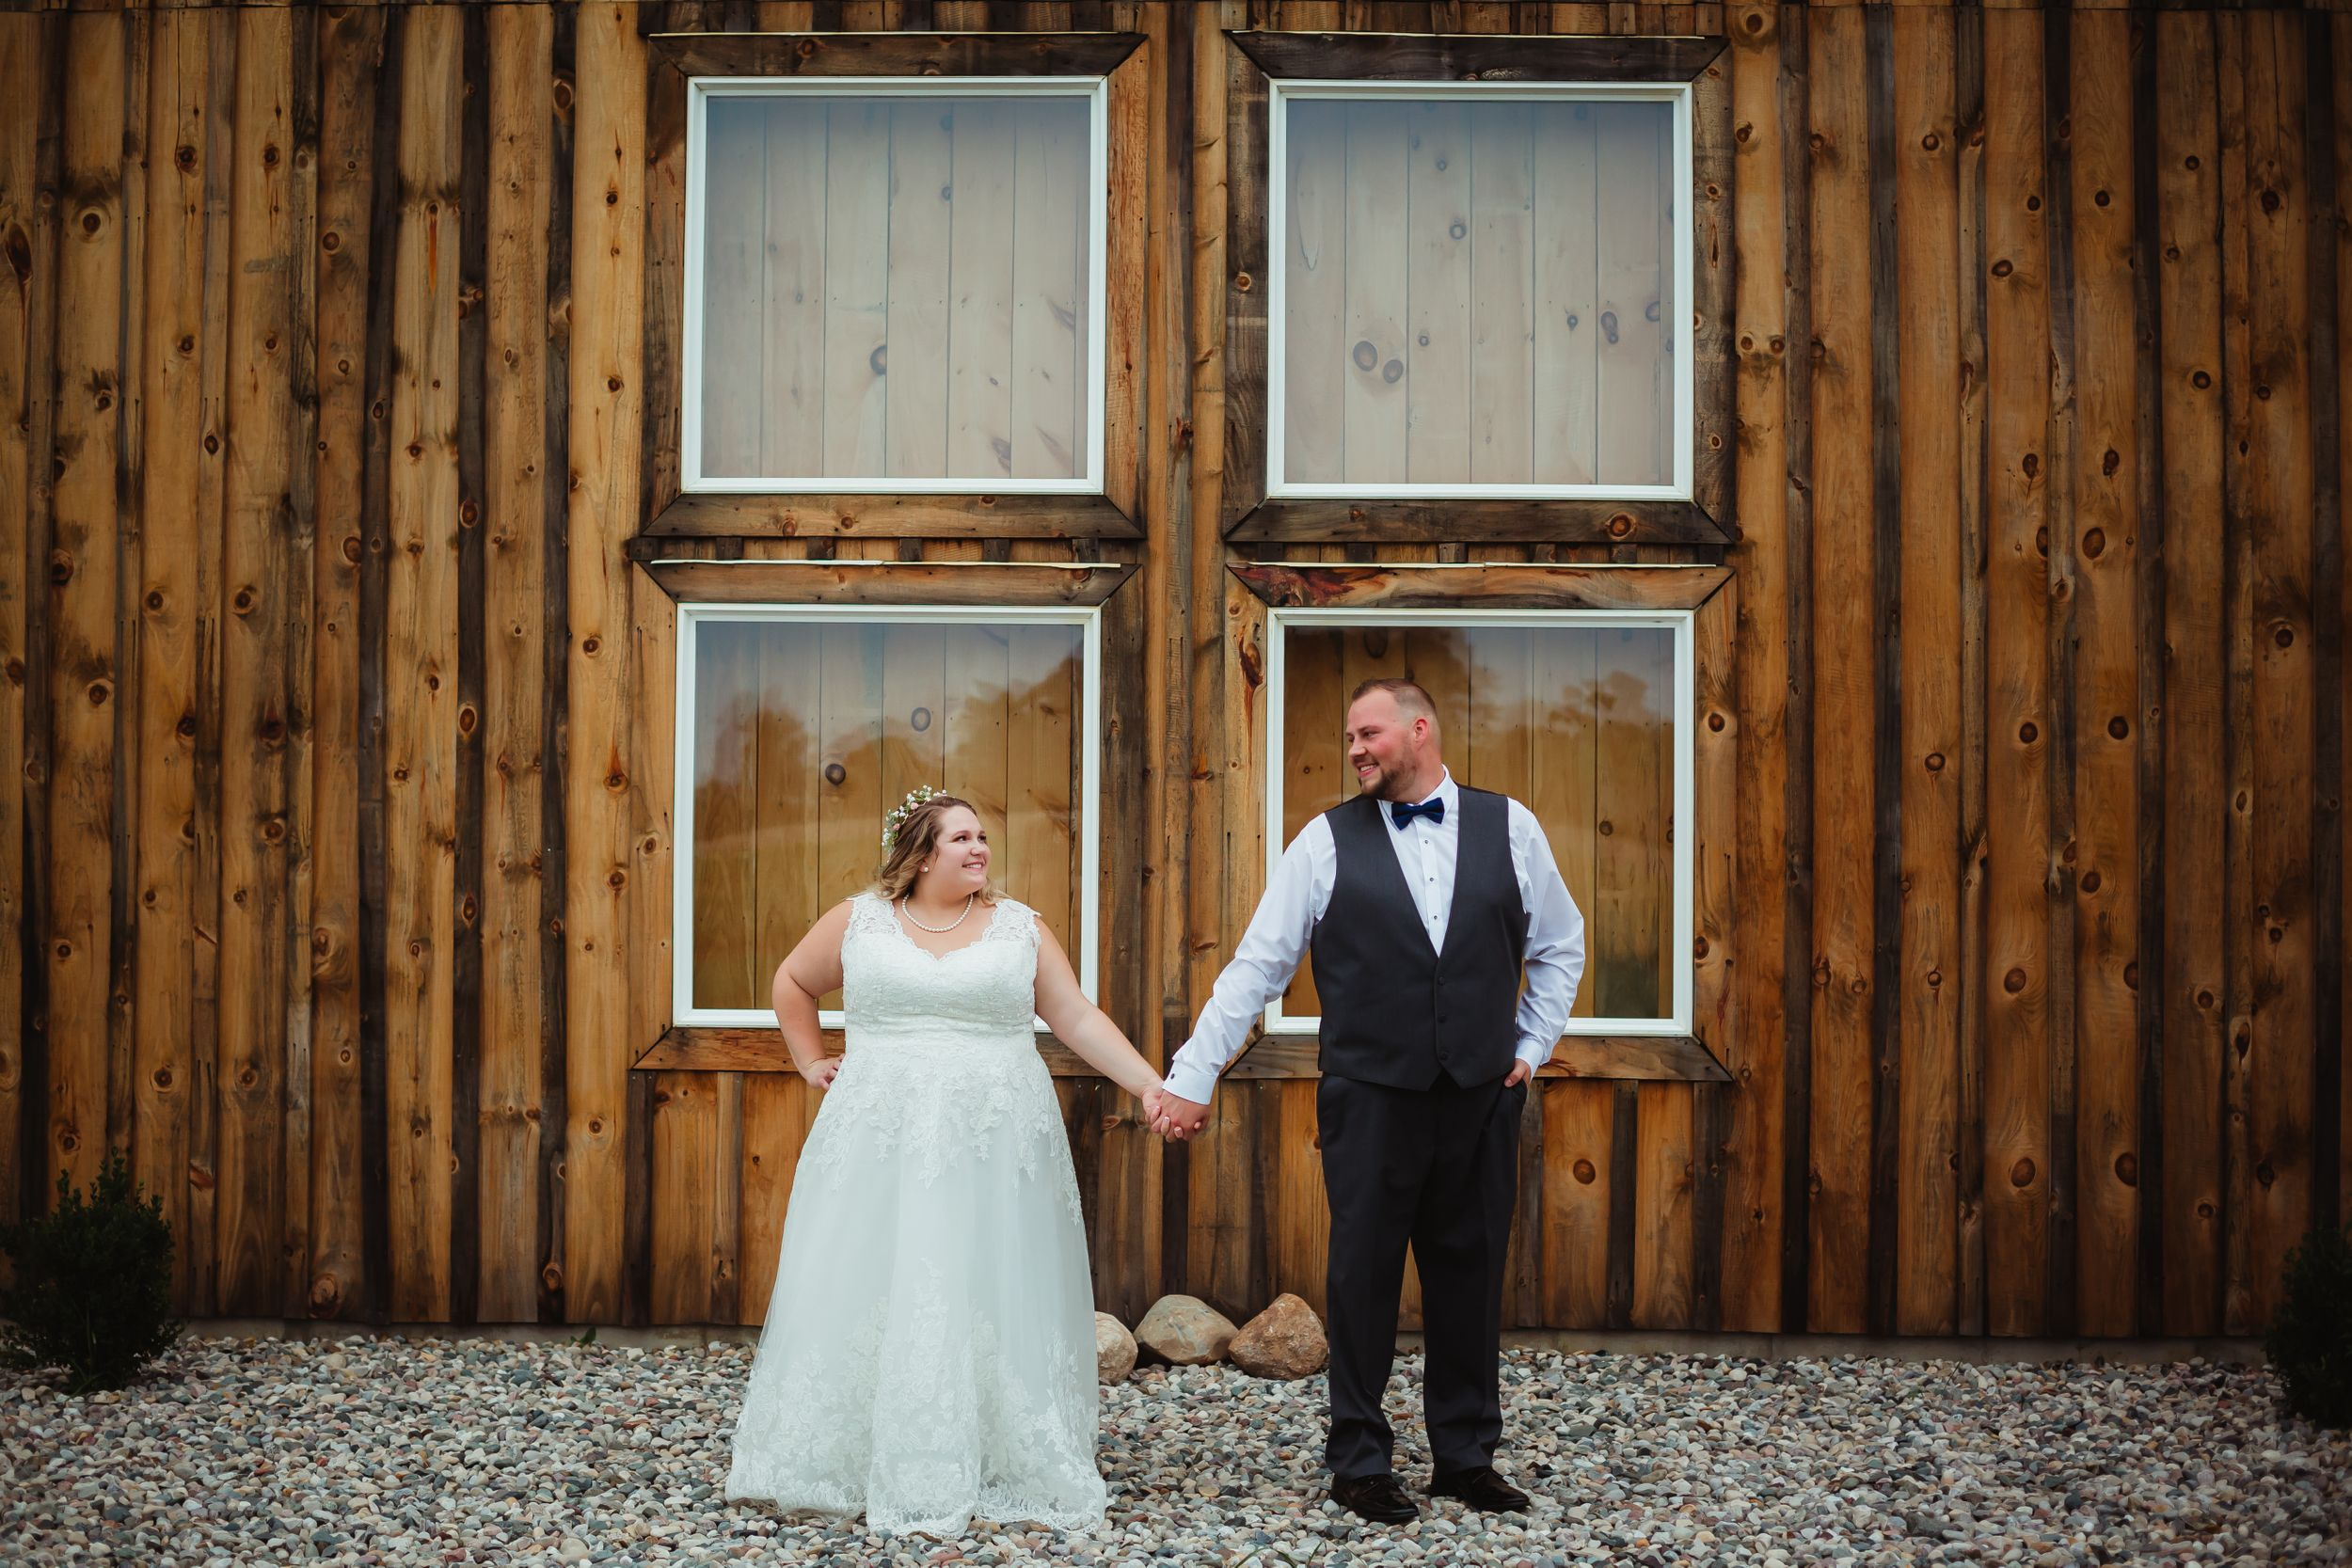 Bride and groom holding hands smiling at each other standing in front of four windows on a barn.